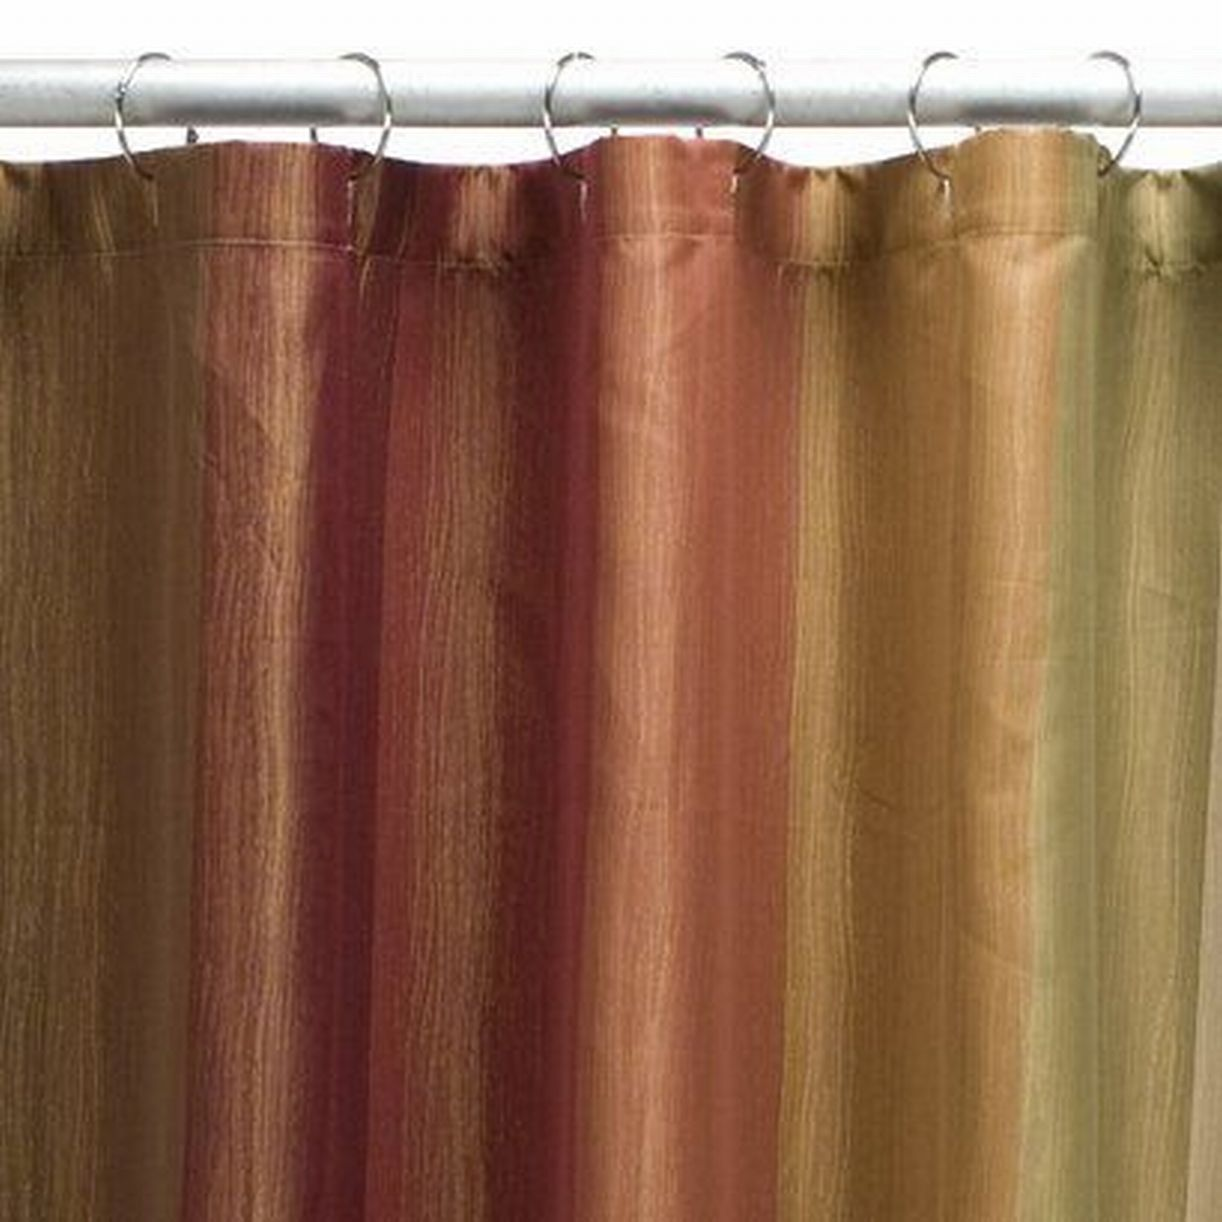 Attractive Threshold Earth Tone Multistripe Fabric Shower Curtain Rust Brown Gold